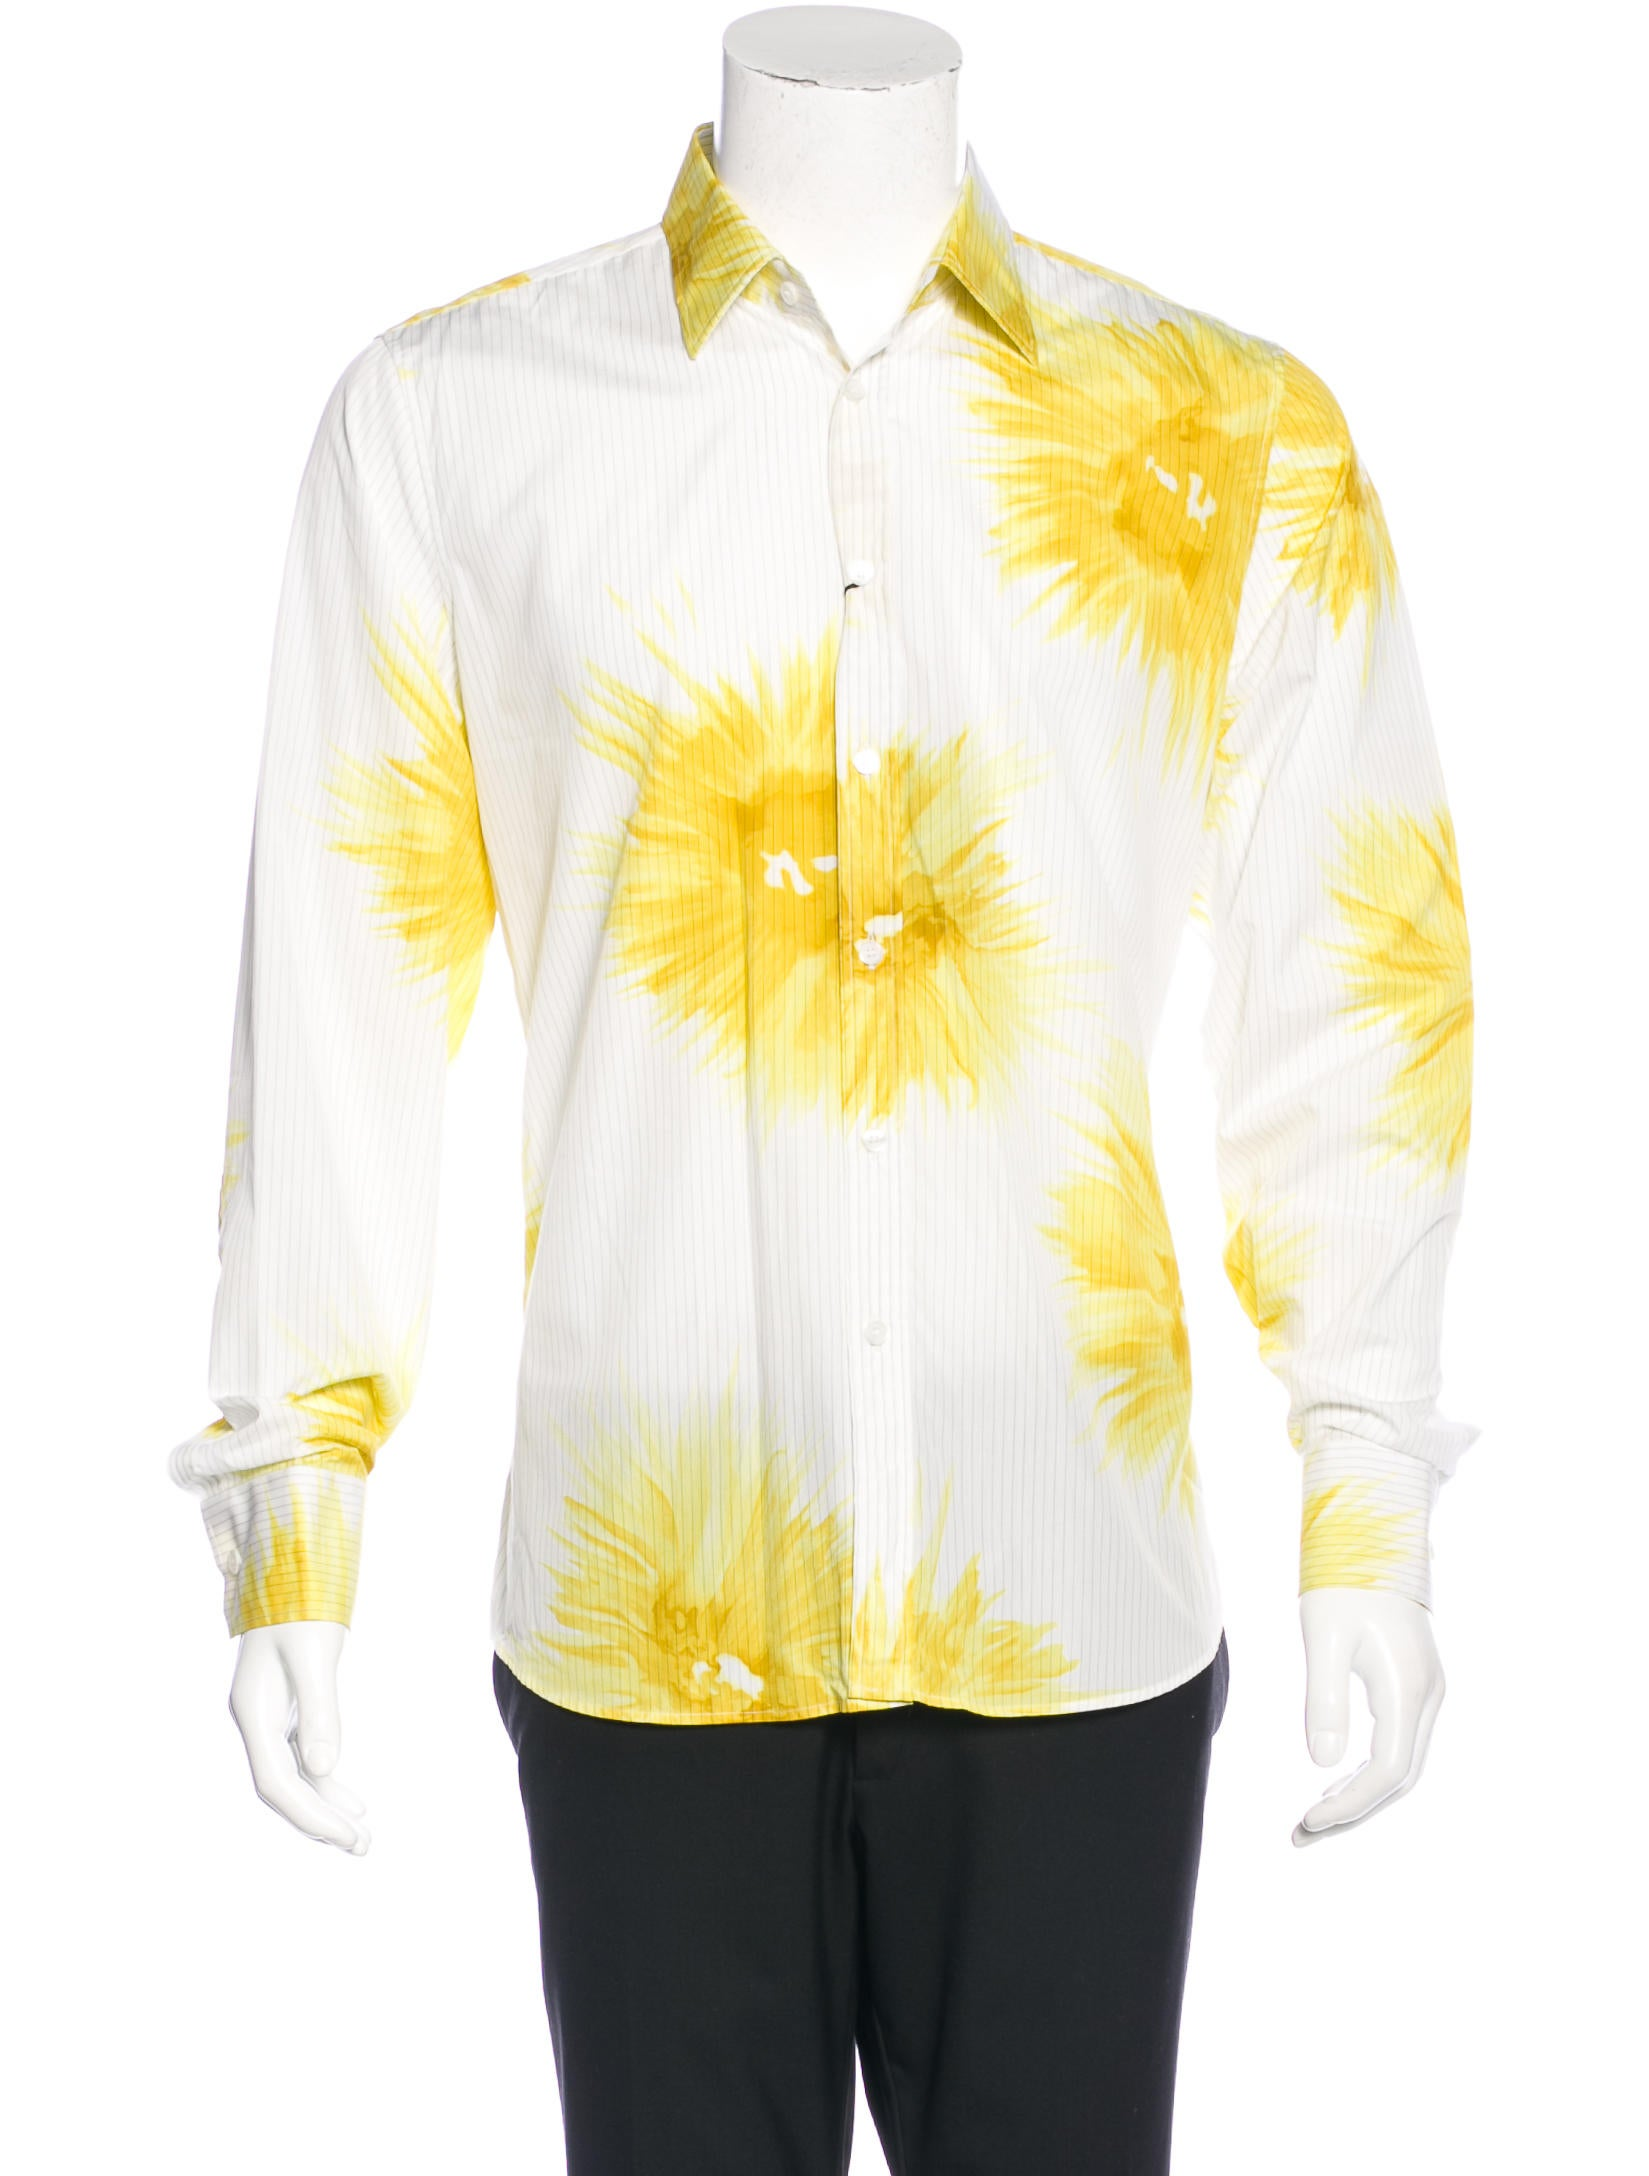 Burberry Home Decor Burberry Striped Daffodil Print Shirt W Tags Clothing